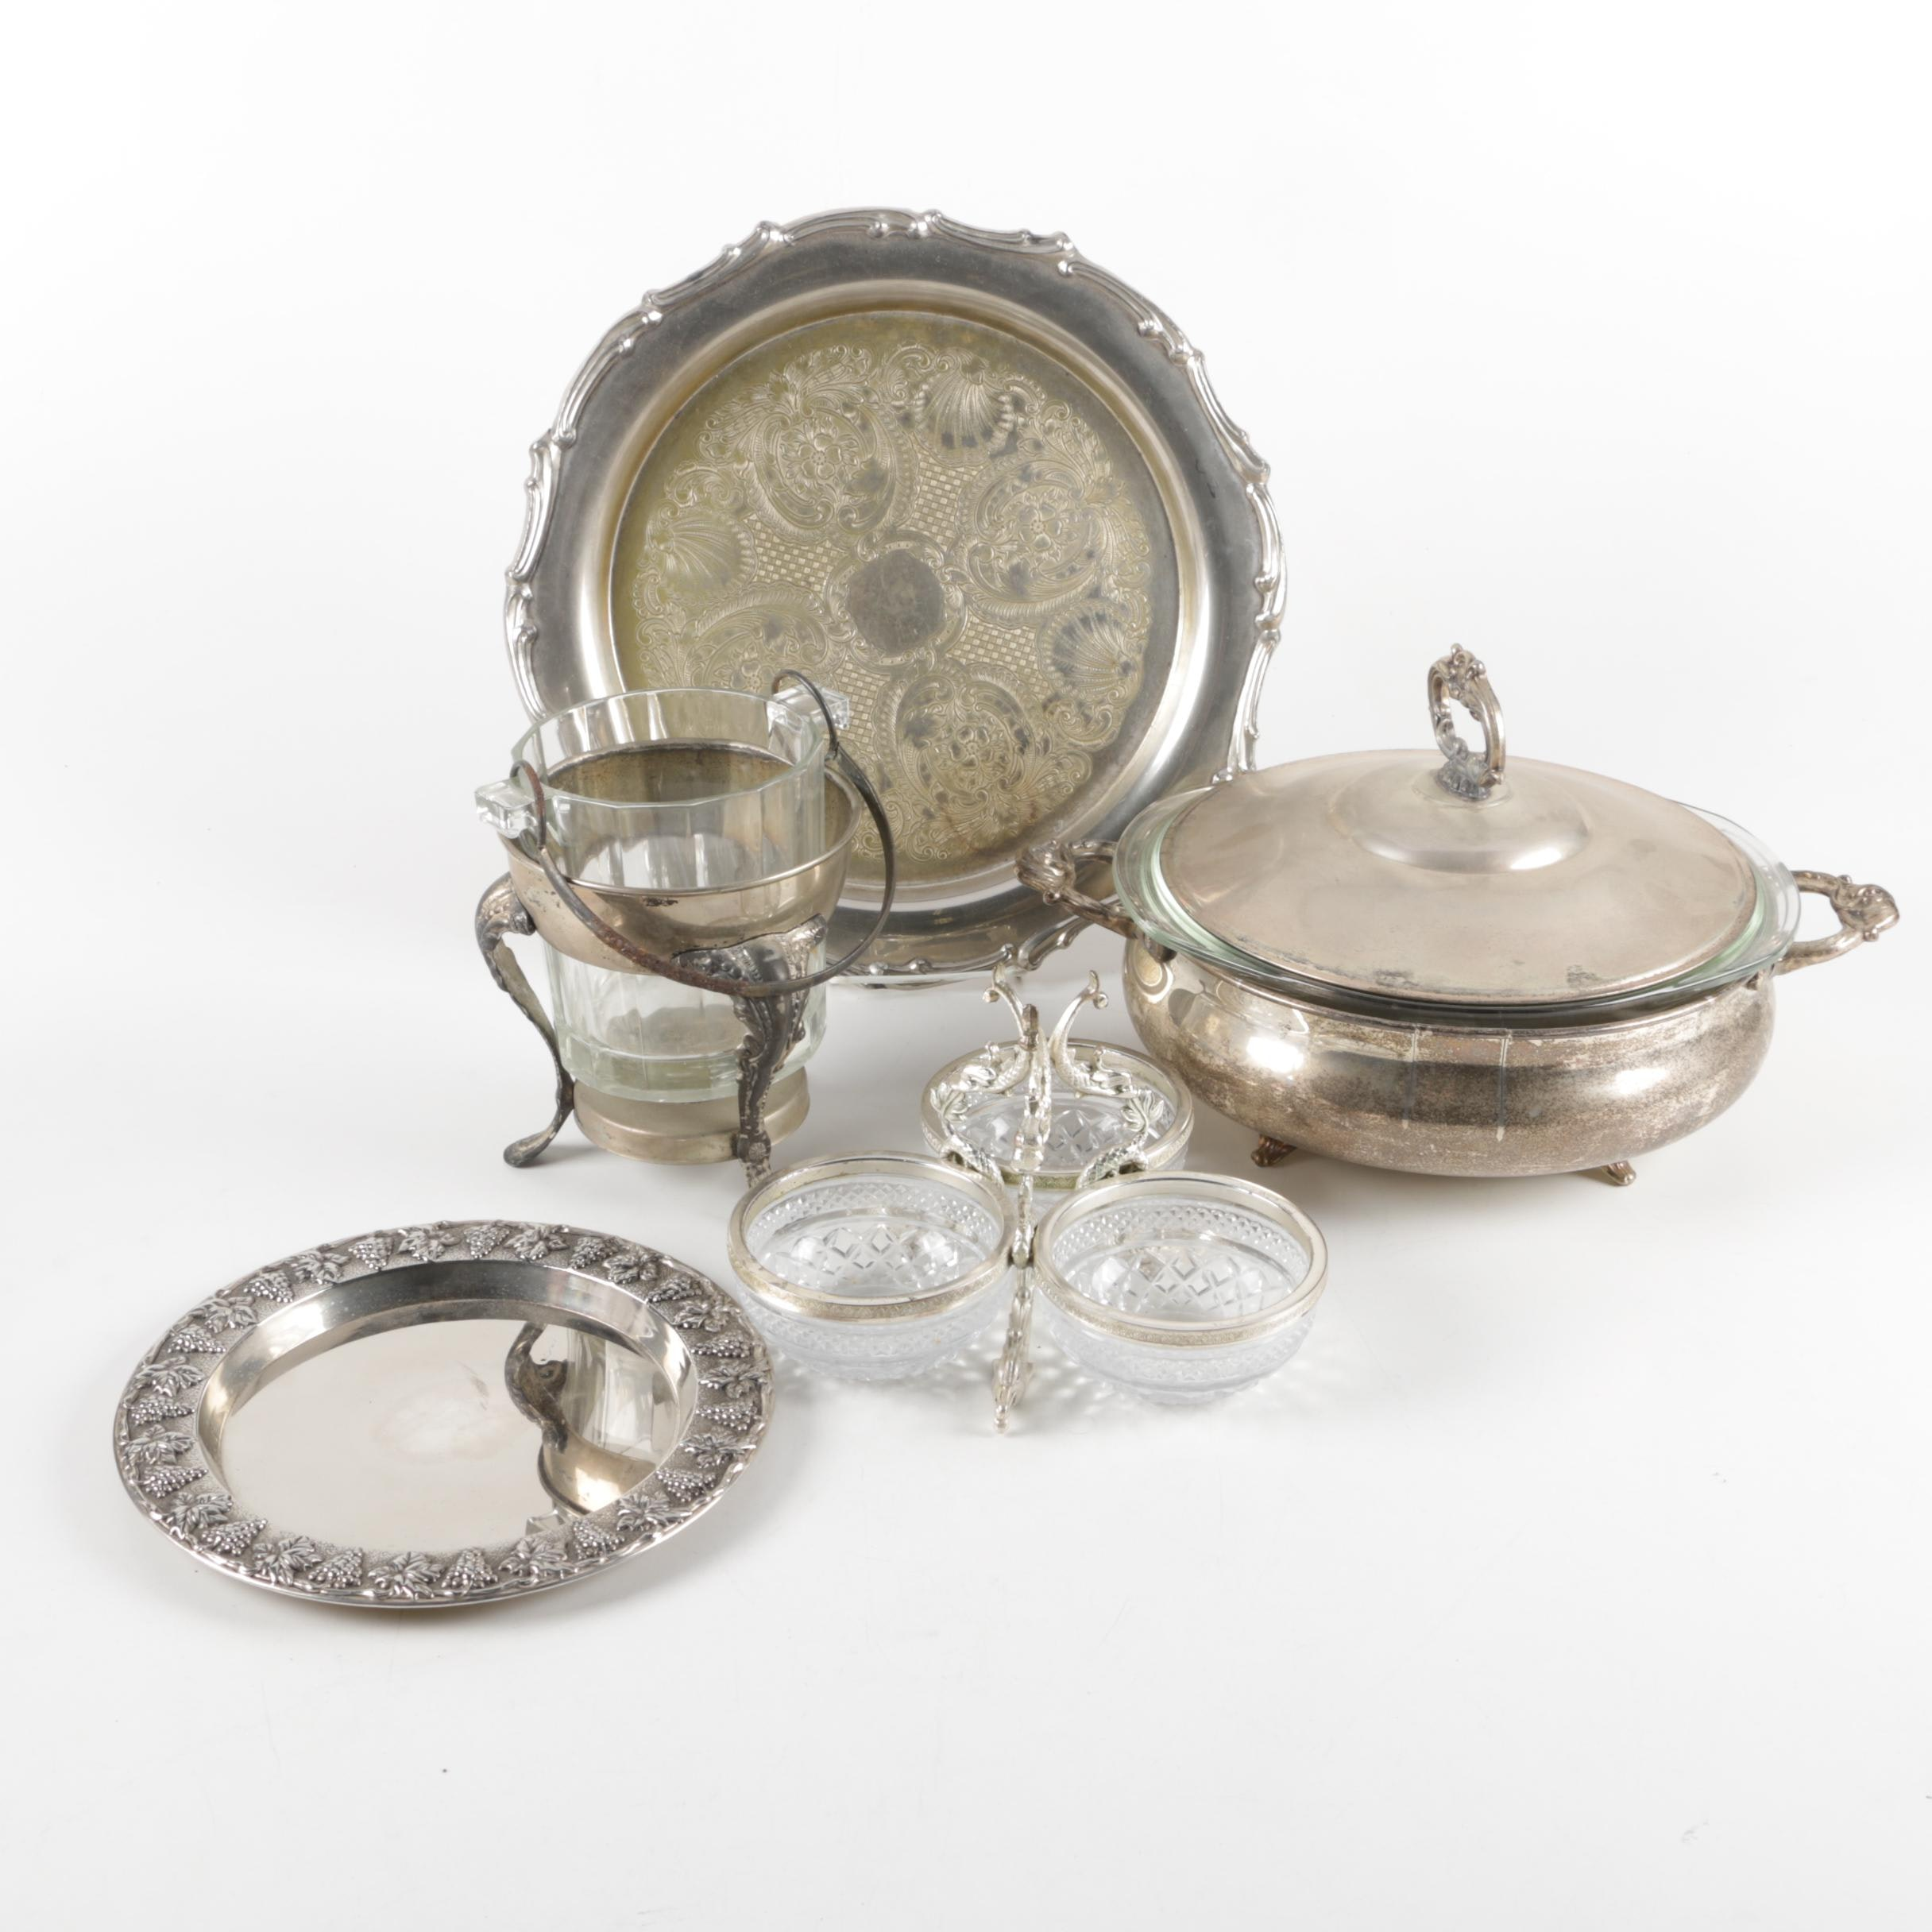 Karshi Chased Kiddush Plate with Other Silver Plate and Silver Tone Serveware